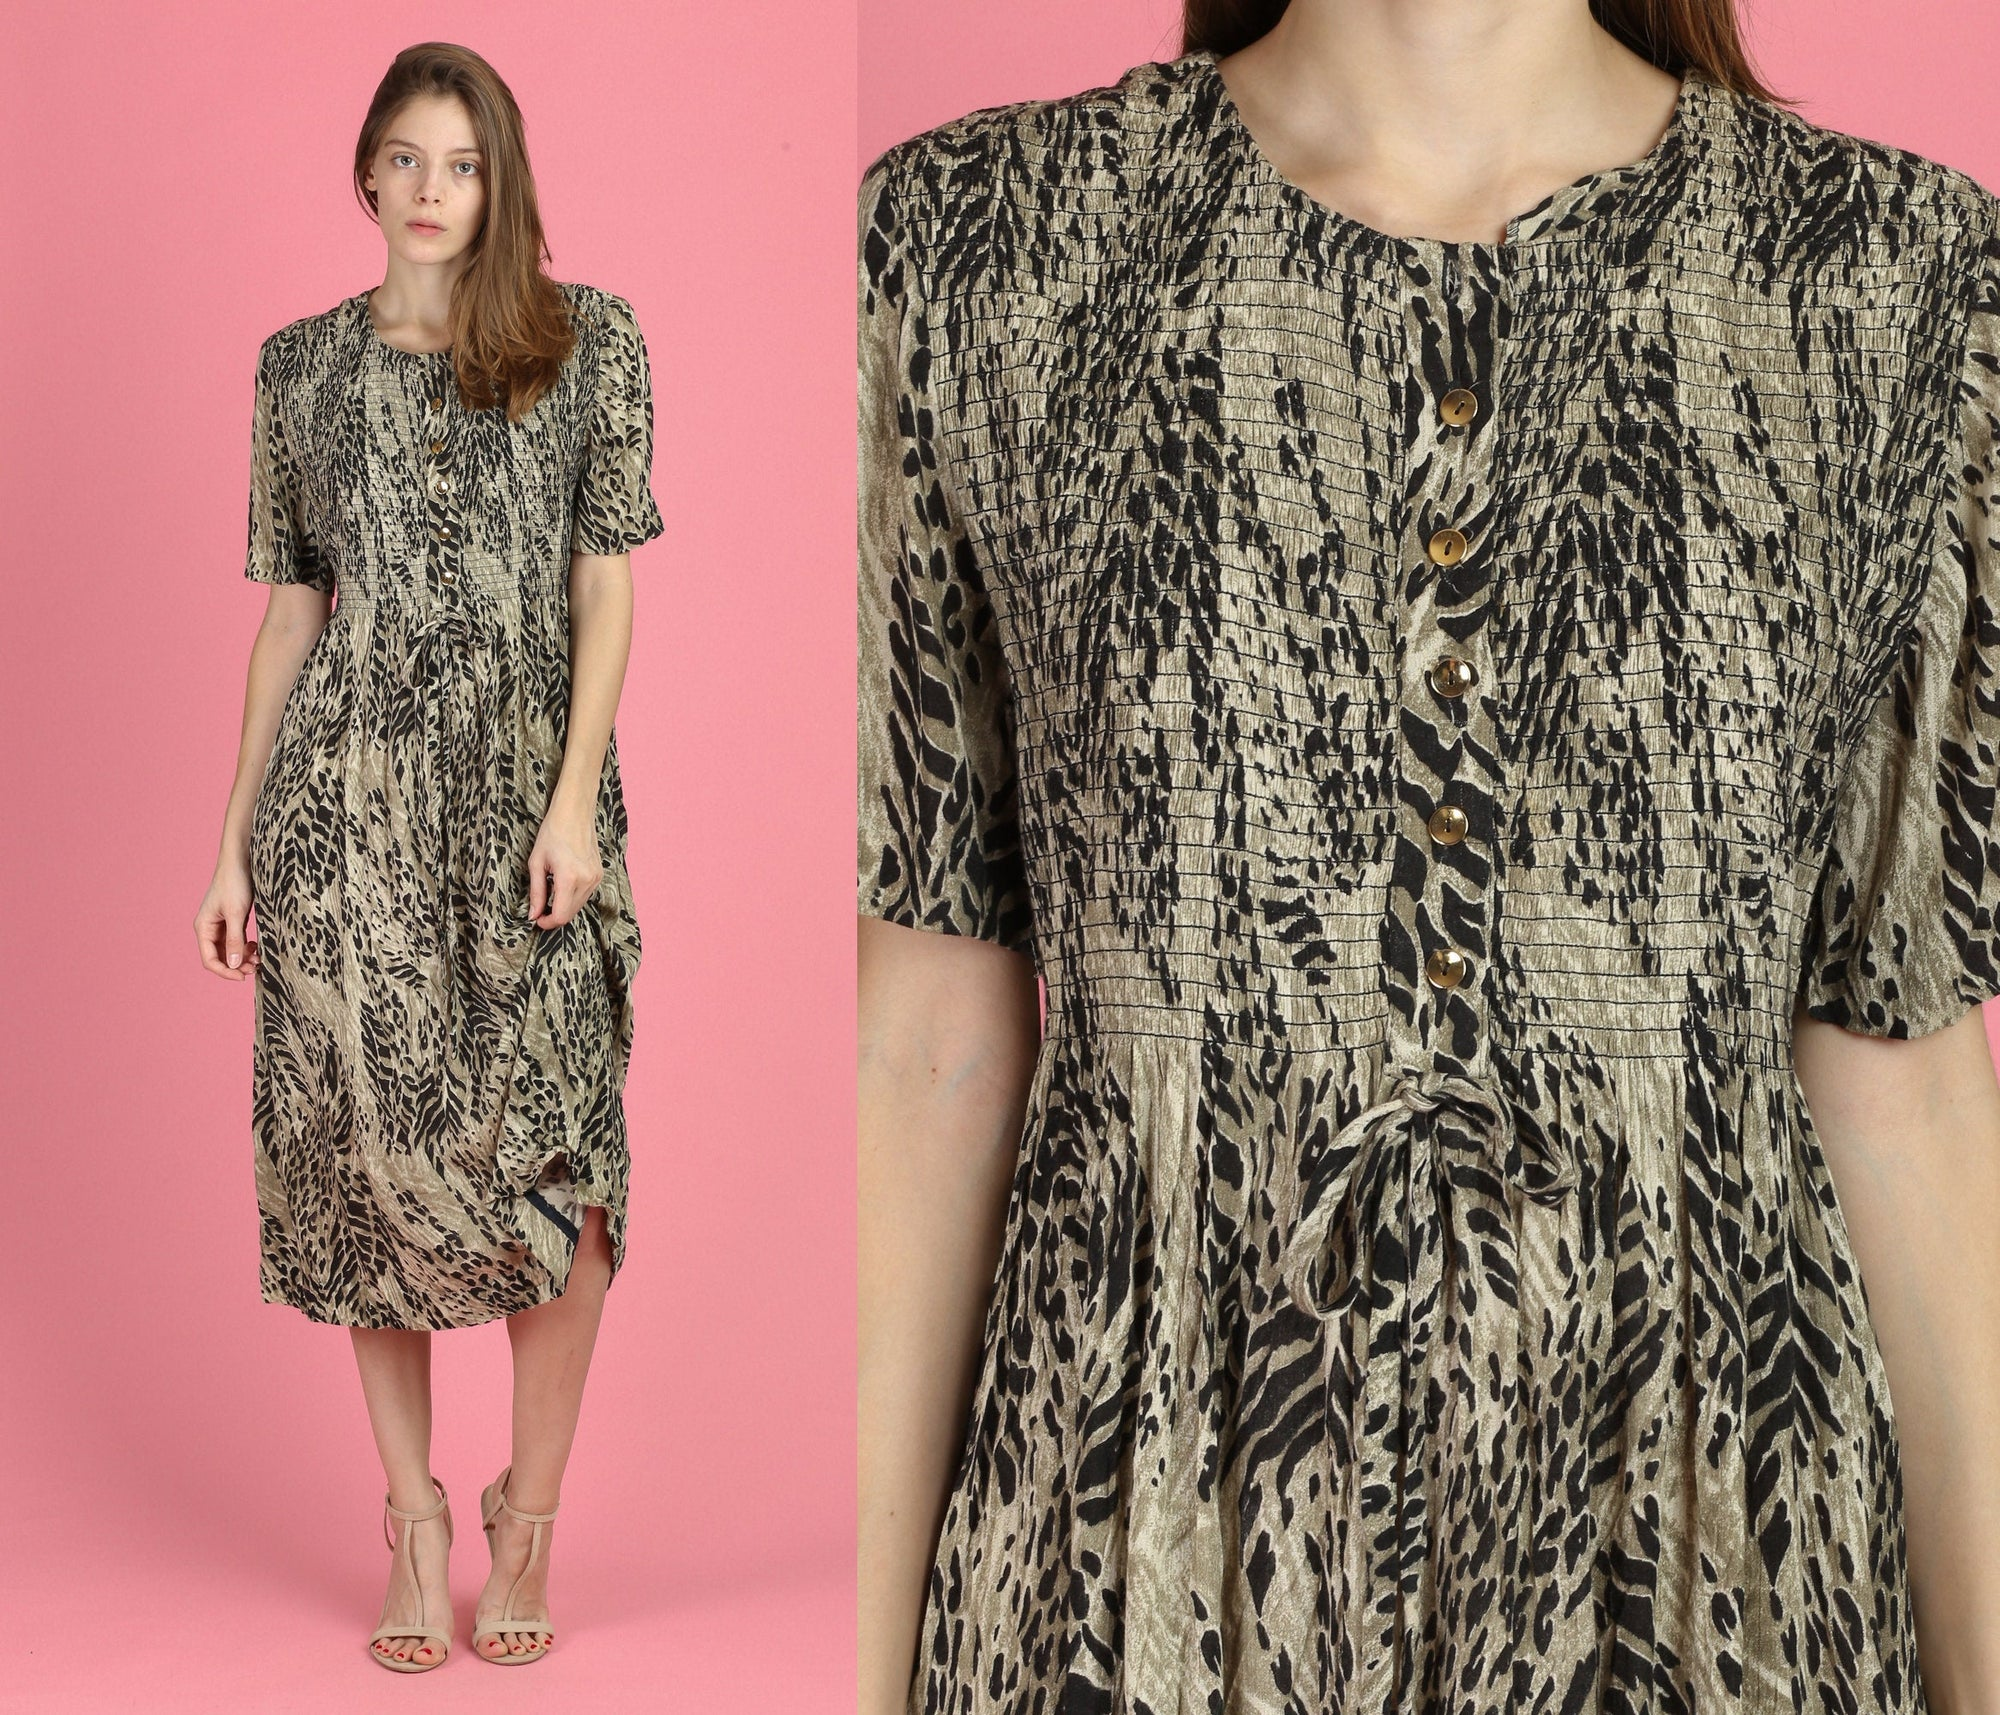 90s Animal Print Grunge Dress - Large